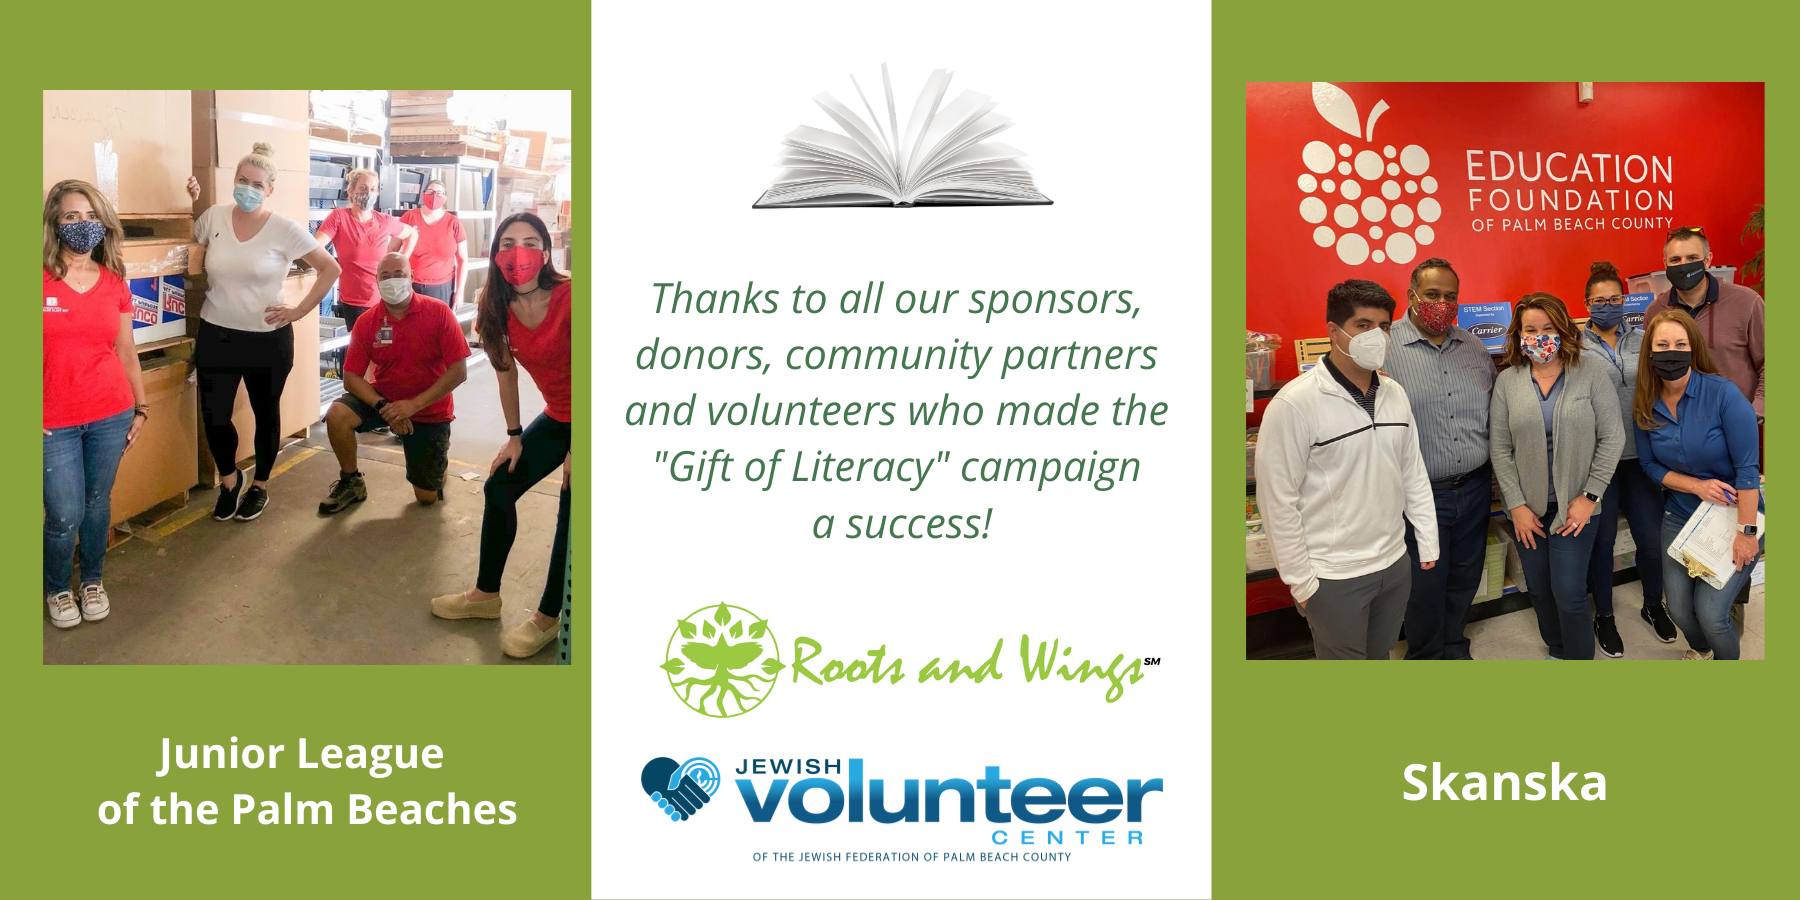 Thank you to sponsors & donors of the Gift of Literacy campaign